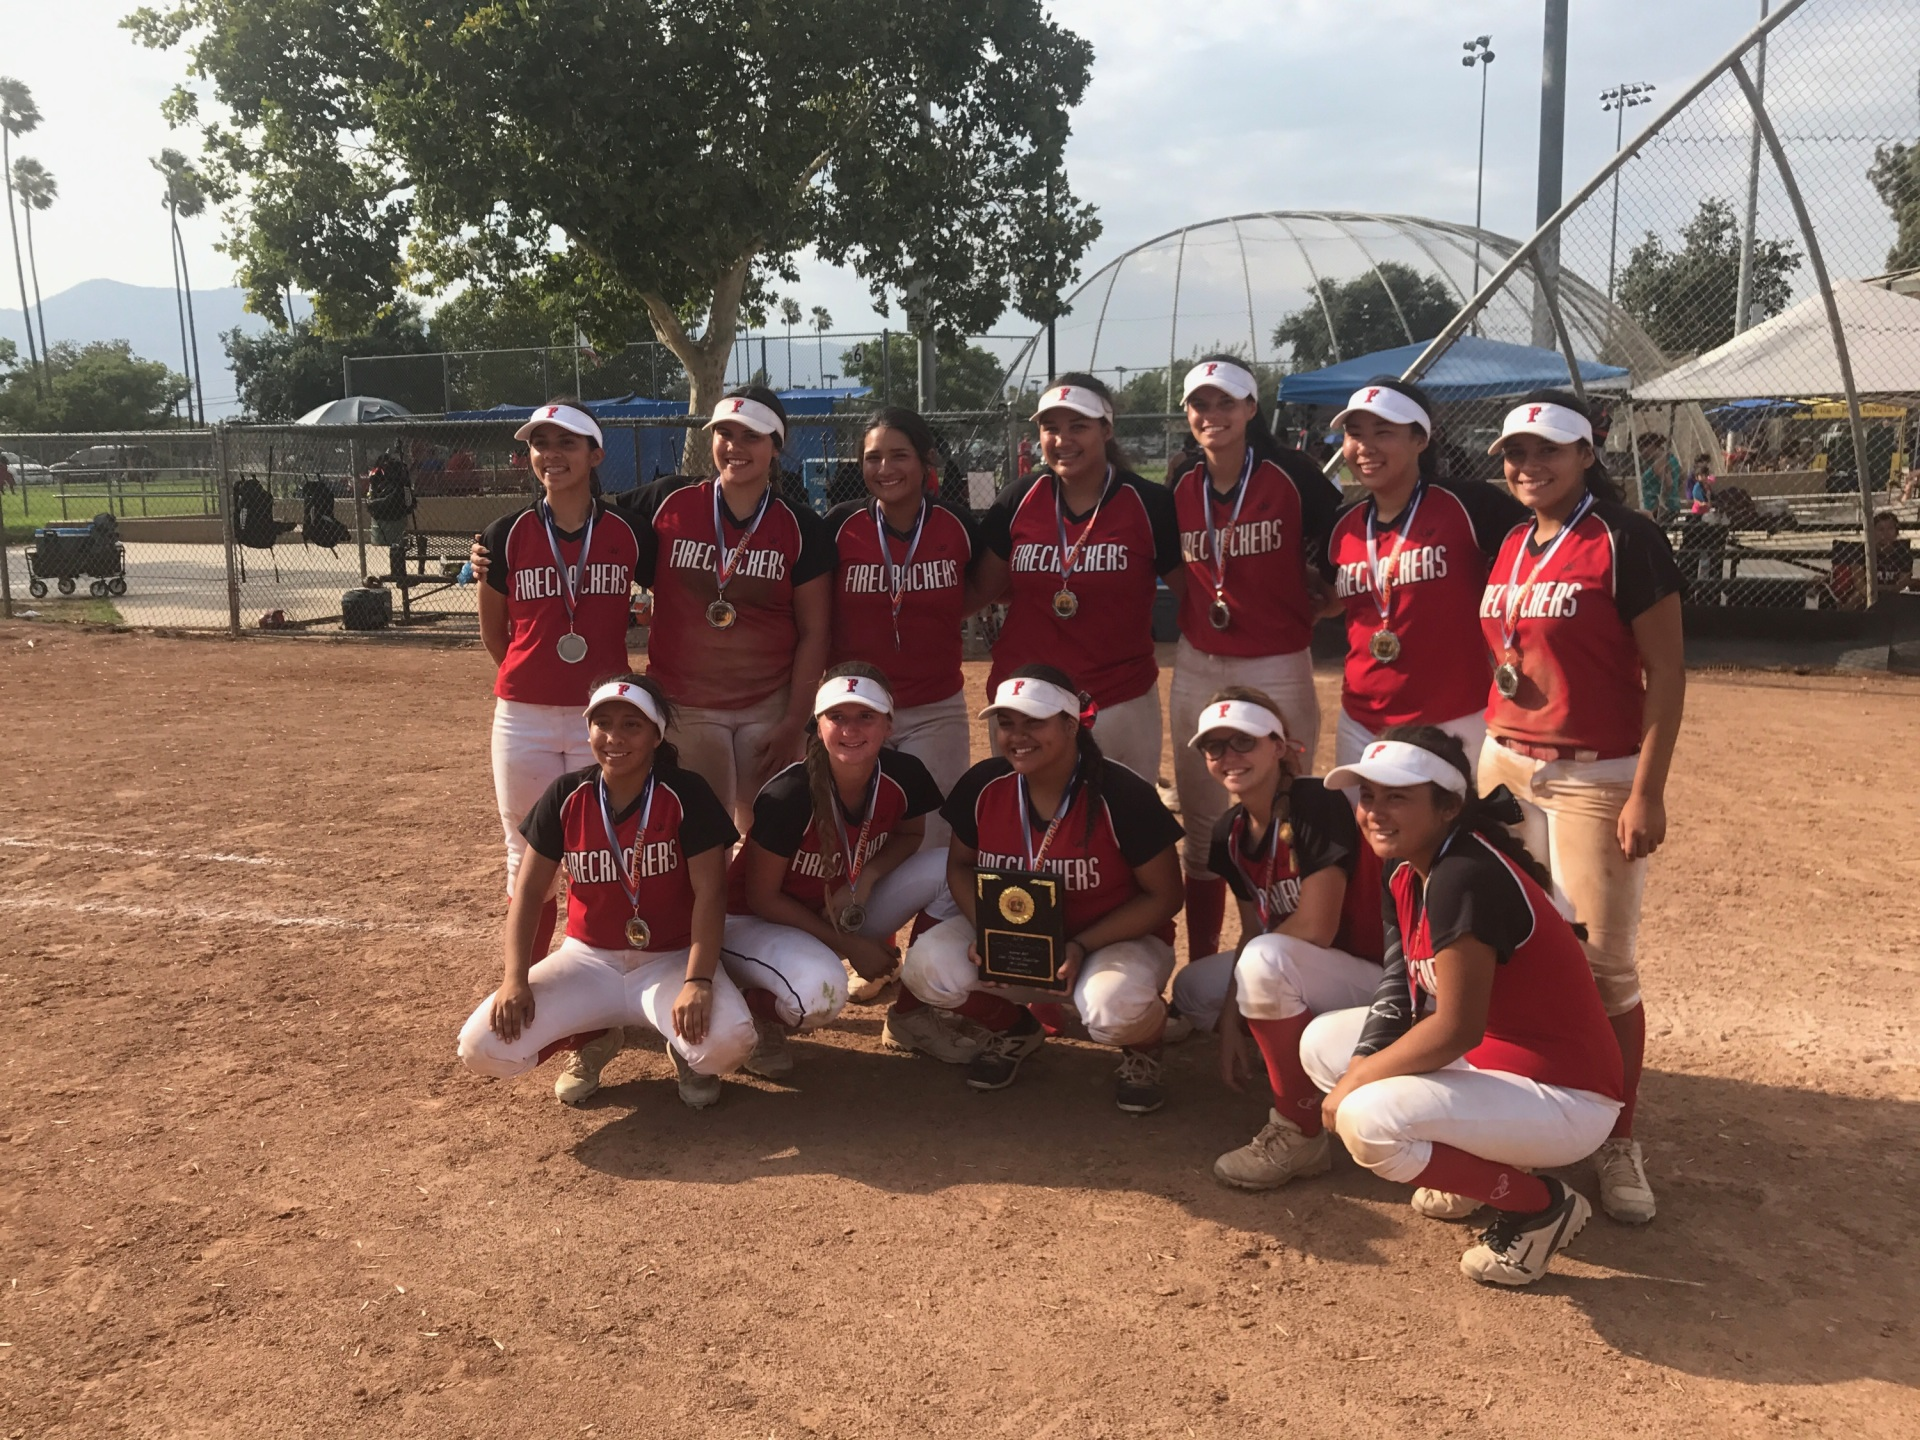 Runner Up - Firecrackers - Ensey/Hernandez 18u